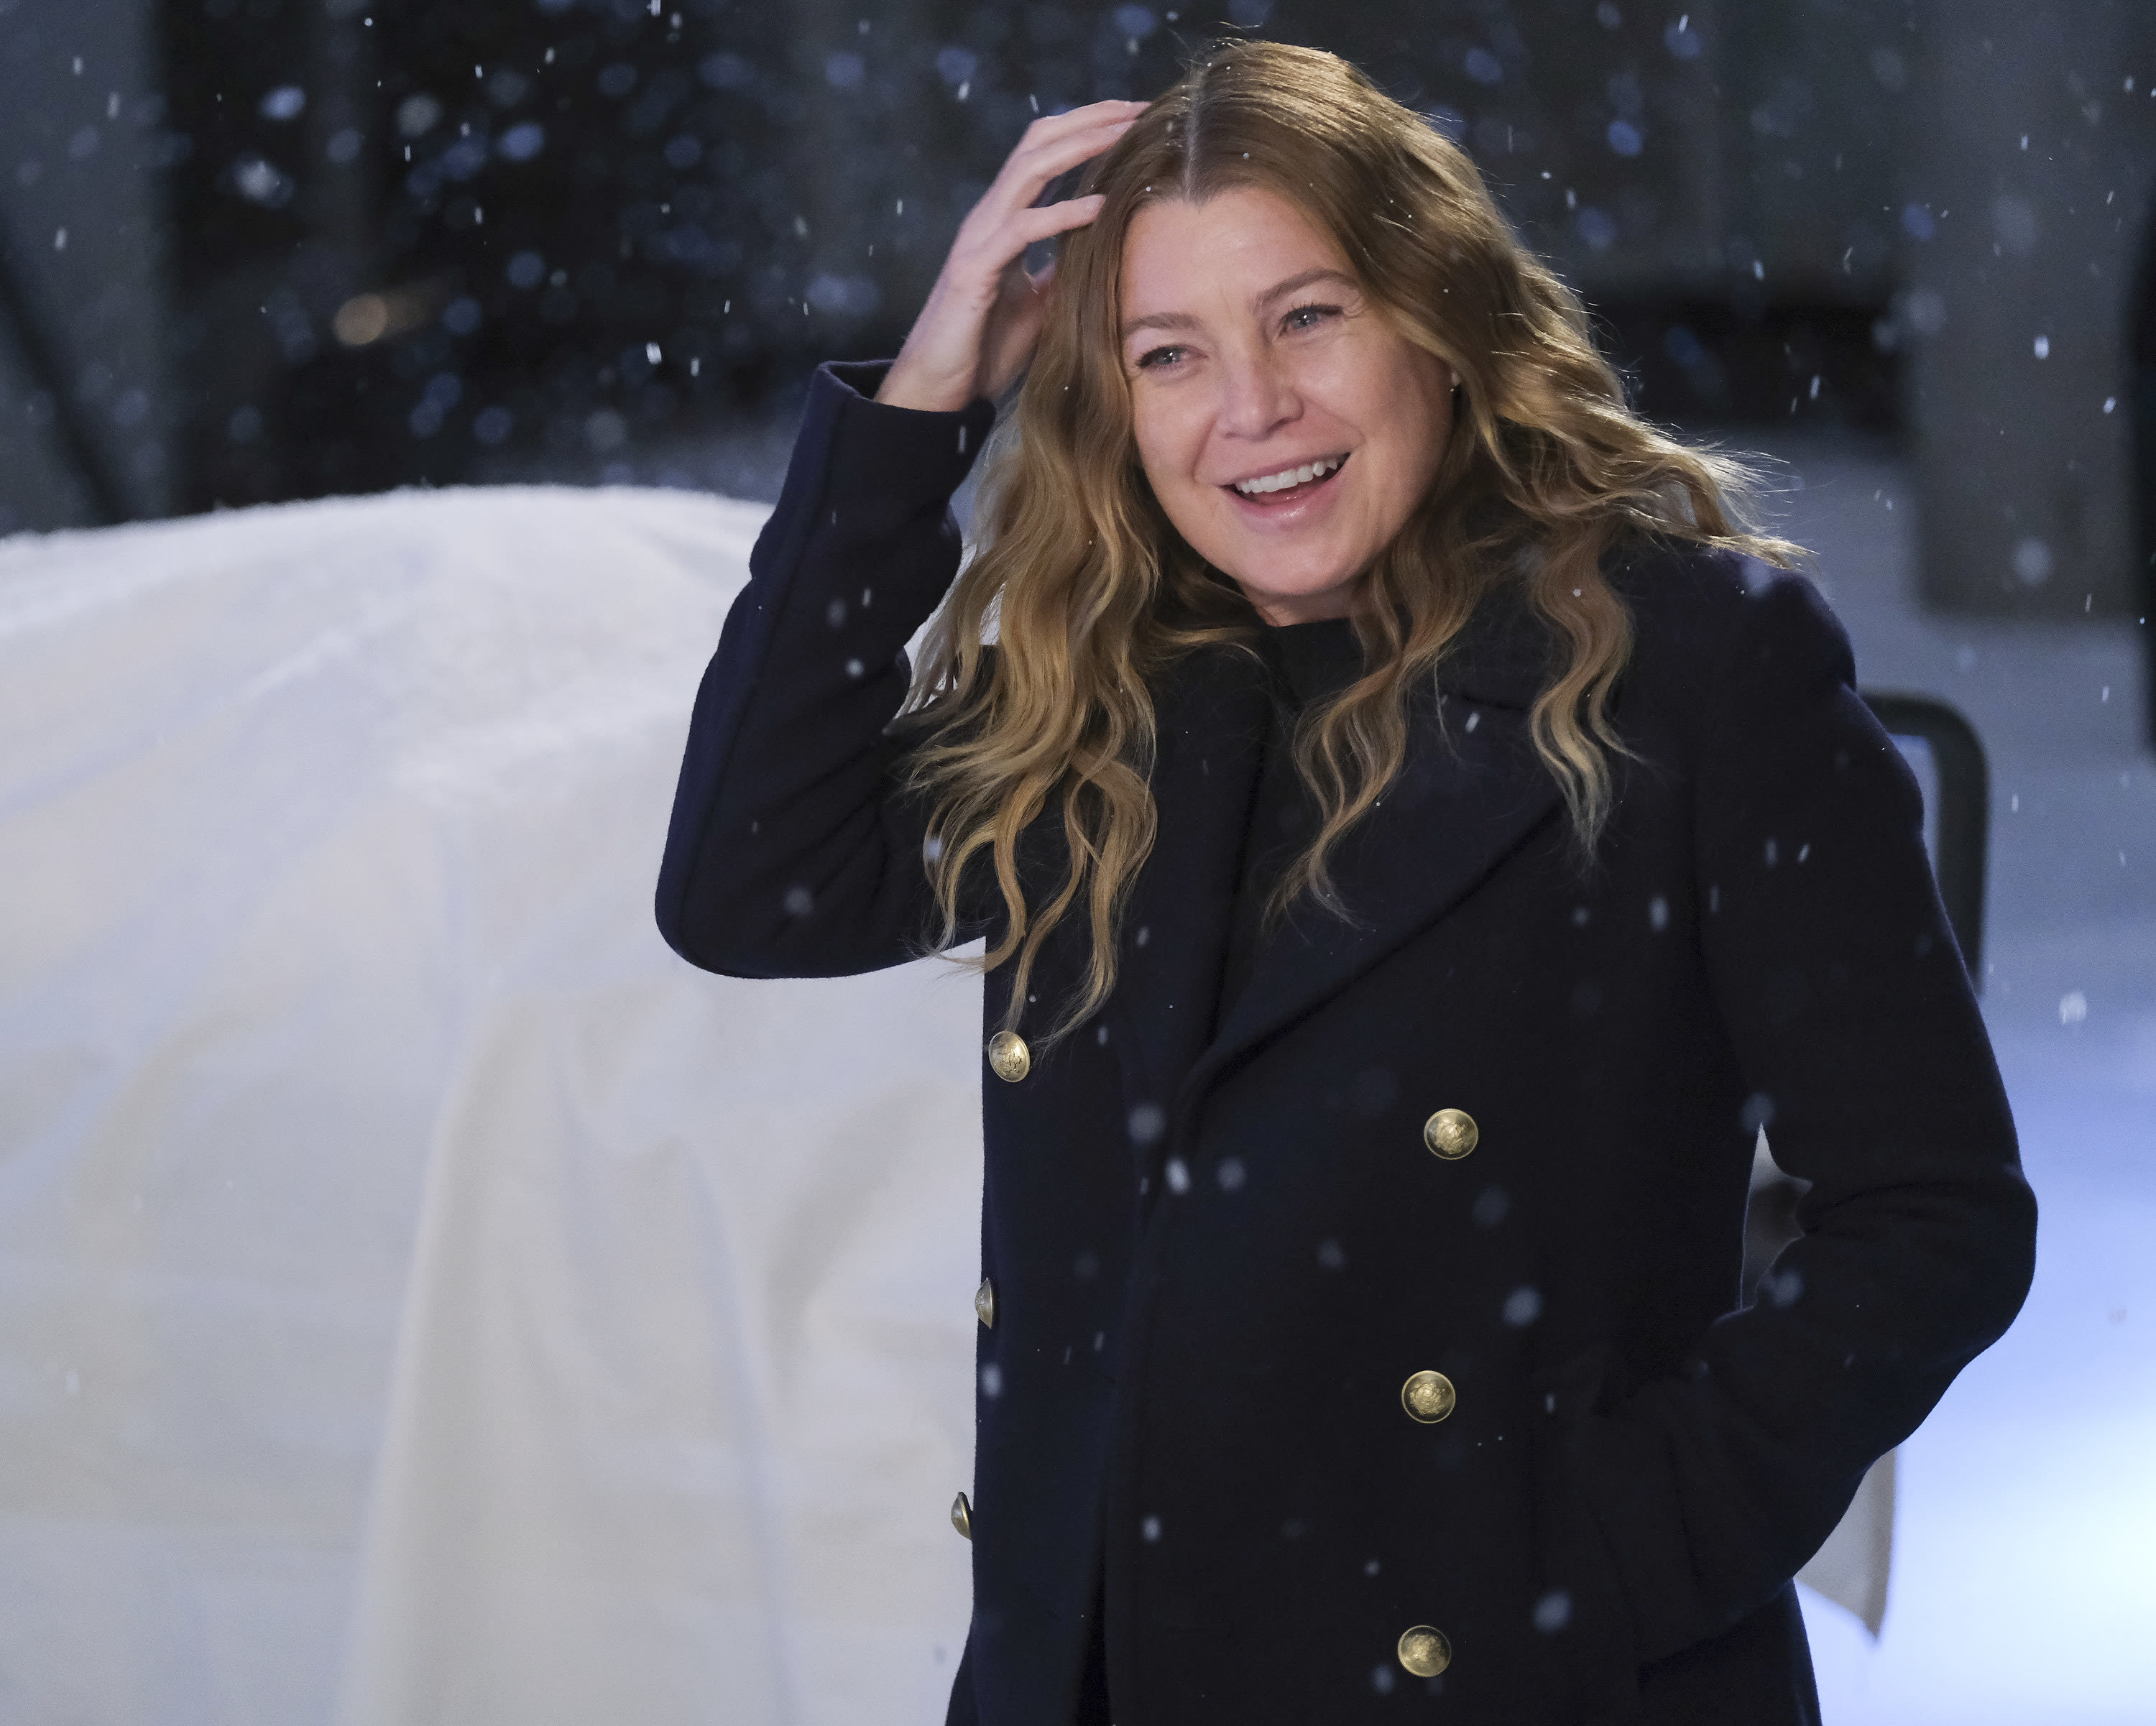 Pompeo touches her hair in the snow